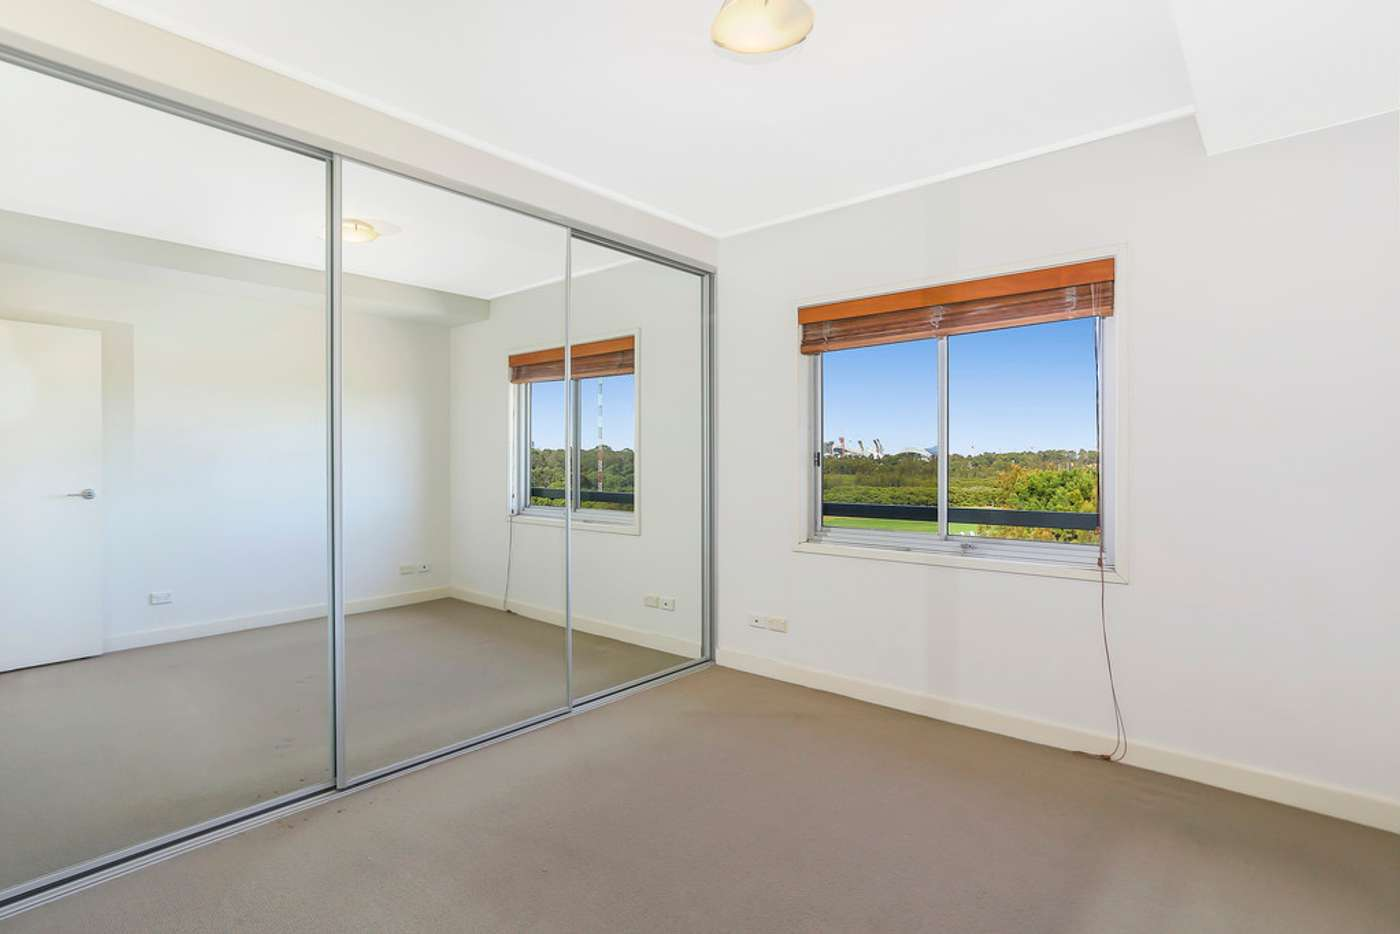 Seventh view of Homely apartment listing, 732/25 Bennelong Parkway, Wentworth Point NSW 2127